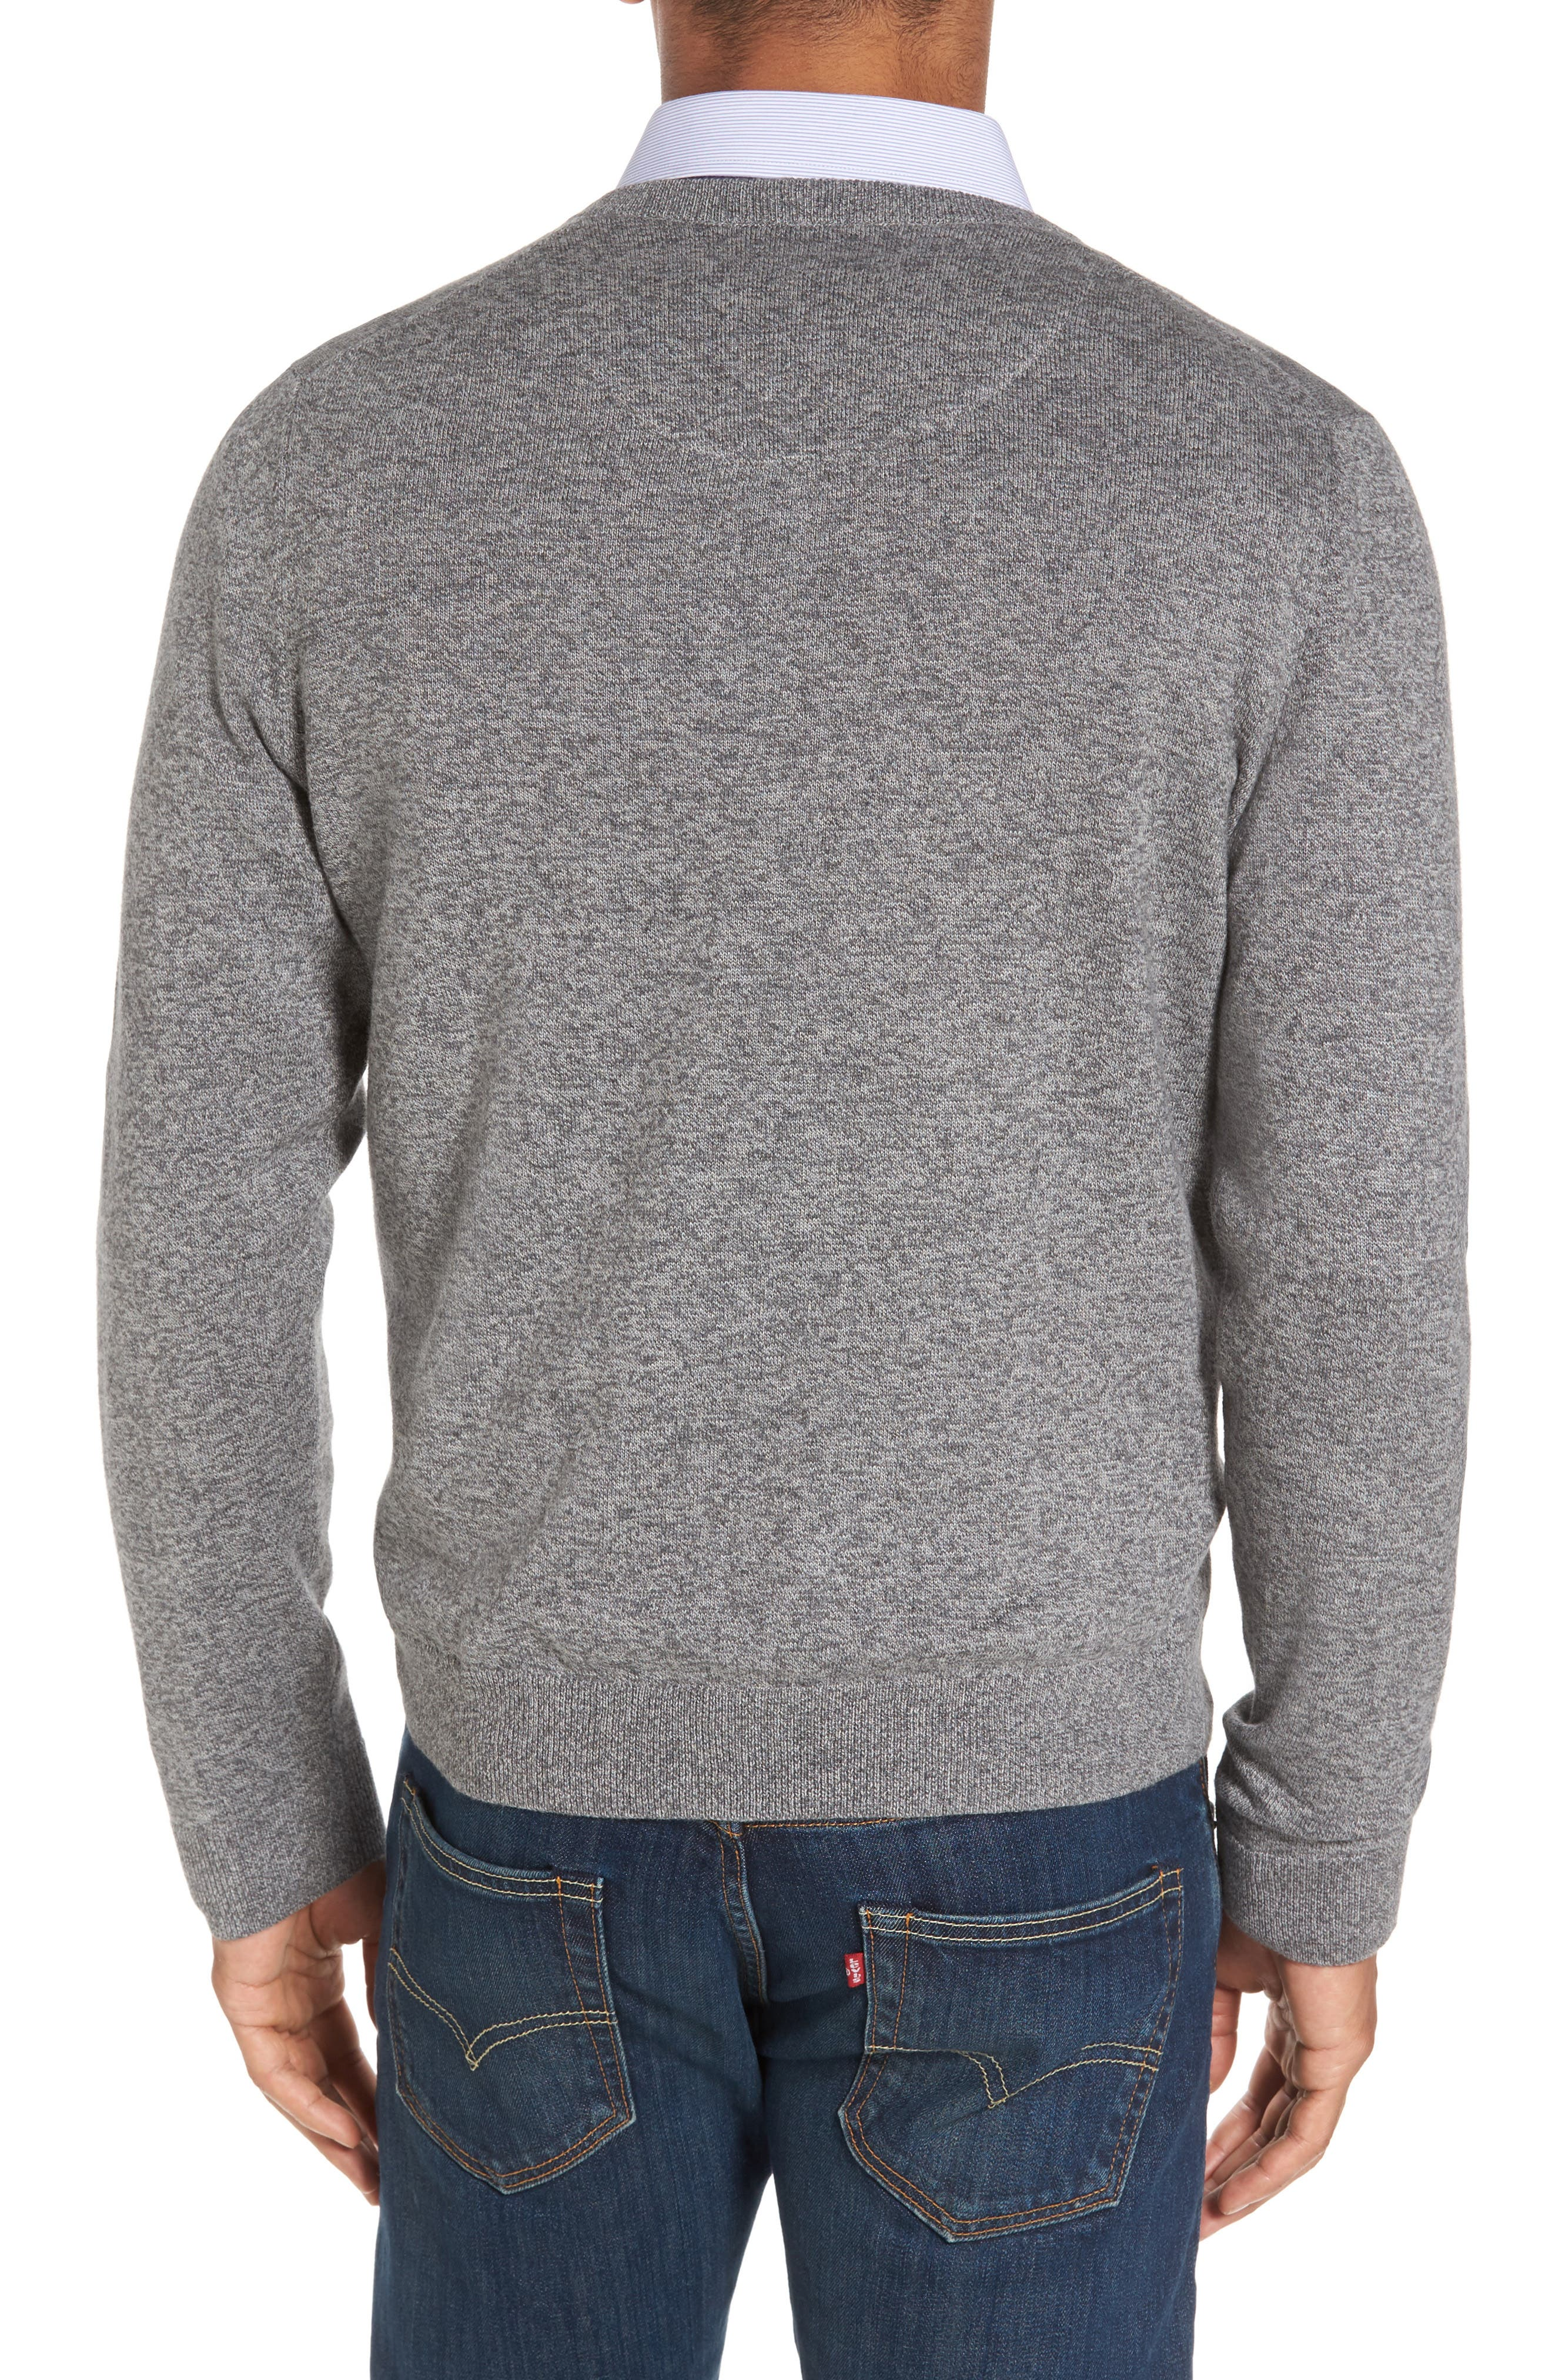 Big and Tall Clothing Mens Suits and More Nordstrom